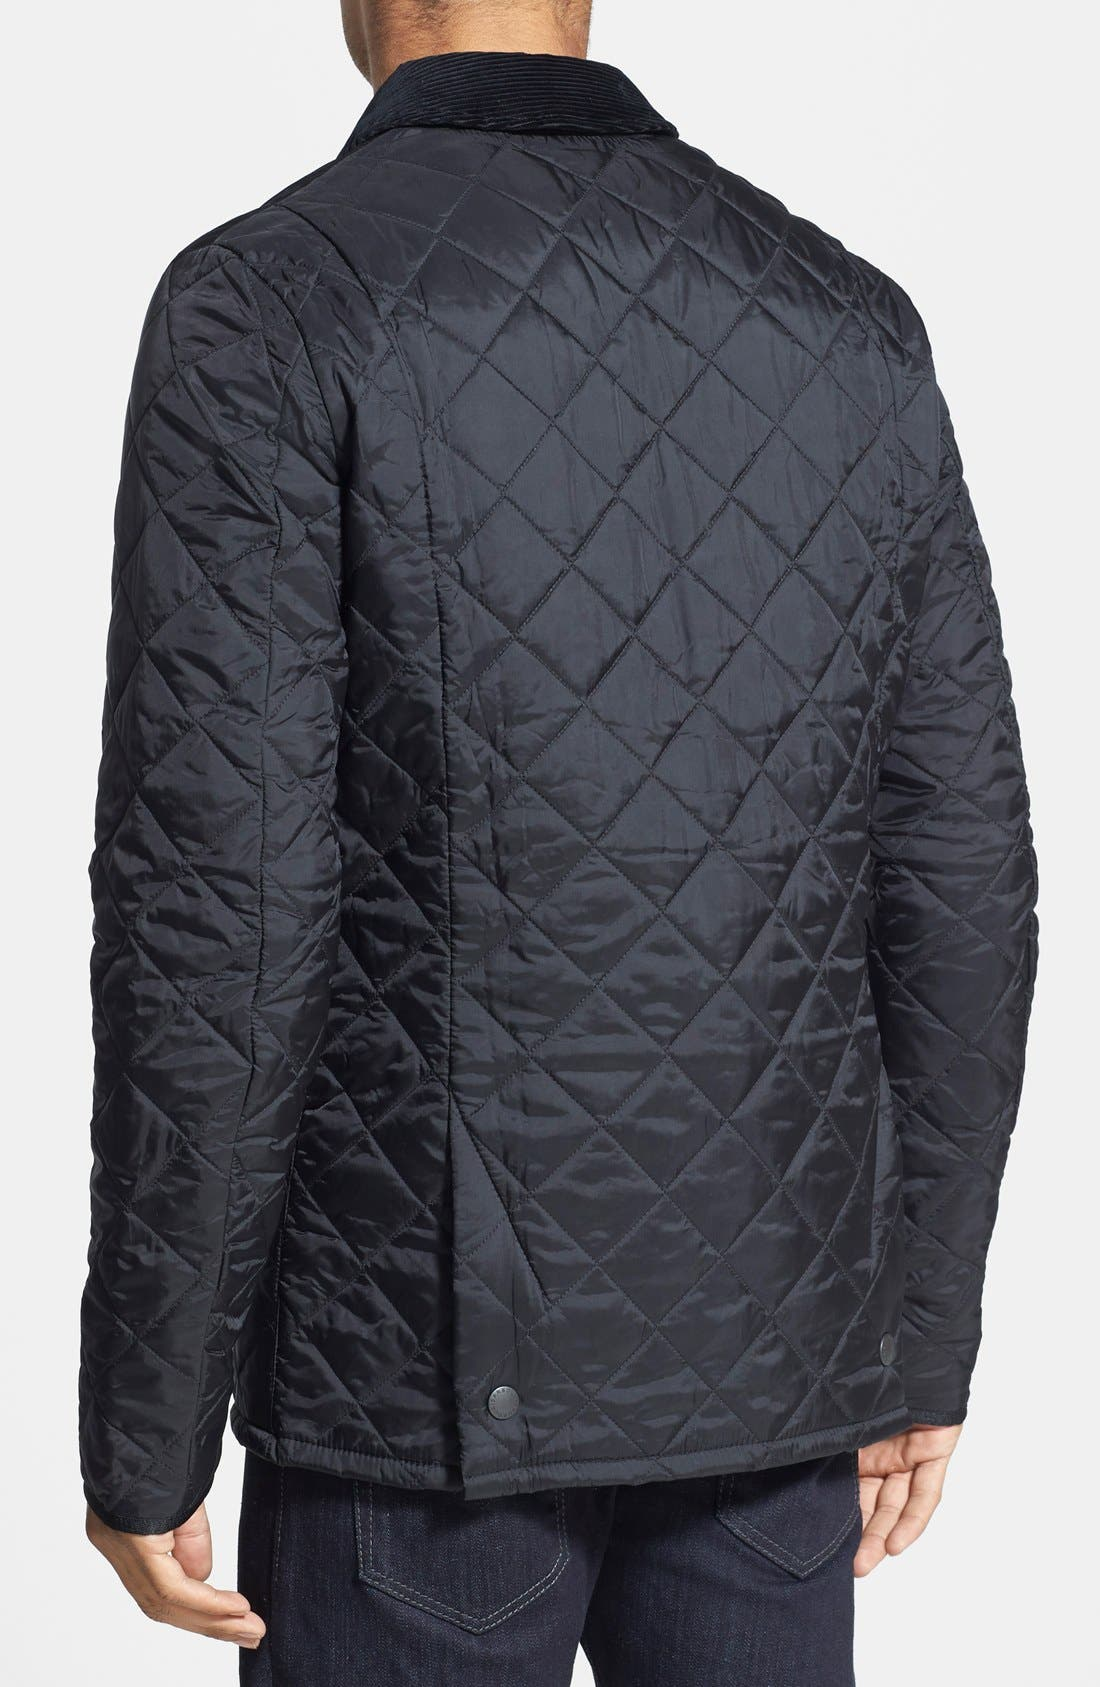 BARBOUR, Heritage Liddesdale Regular Fit Quilted Jacket, Alternate thumbnail 2, color, BLACK